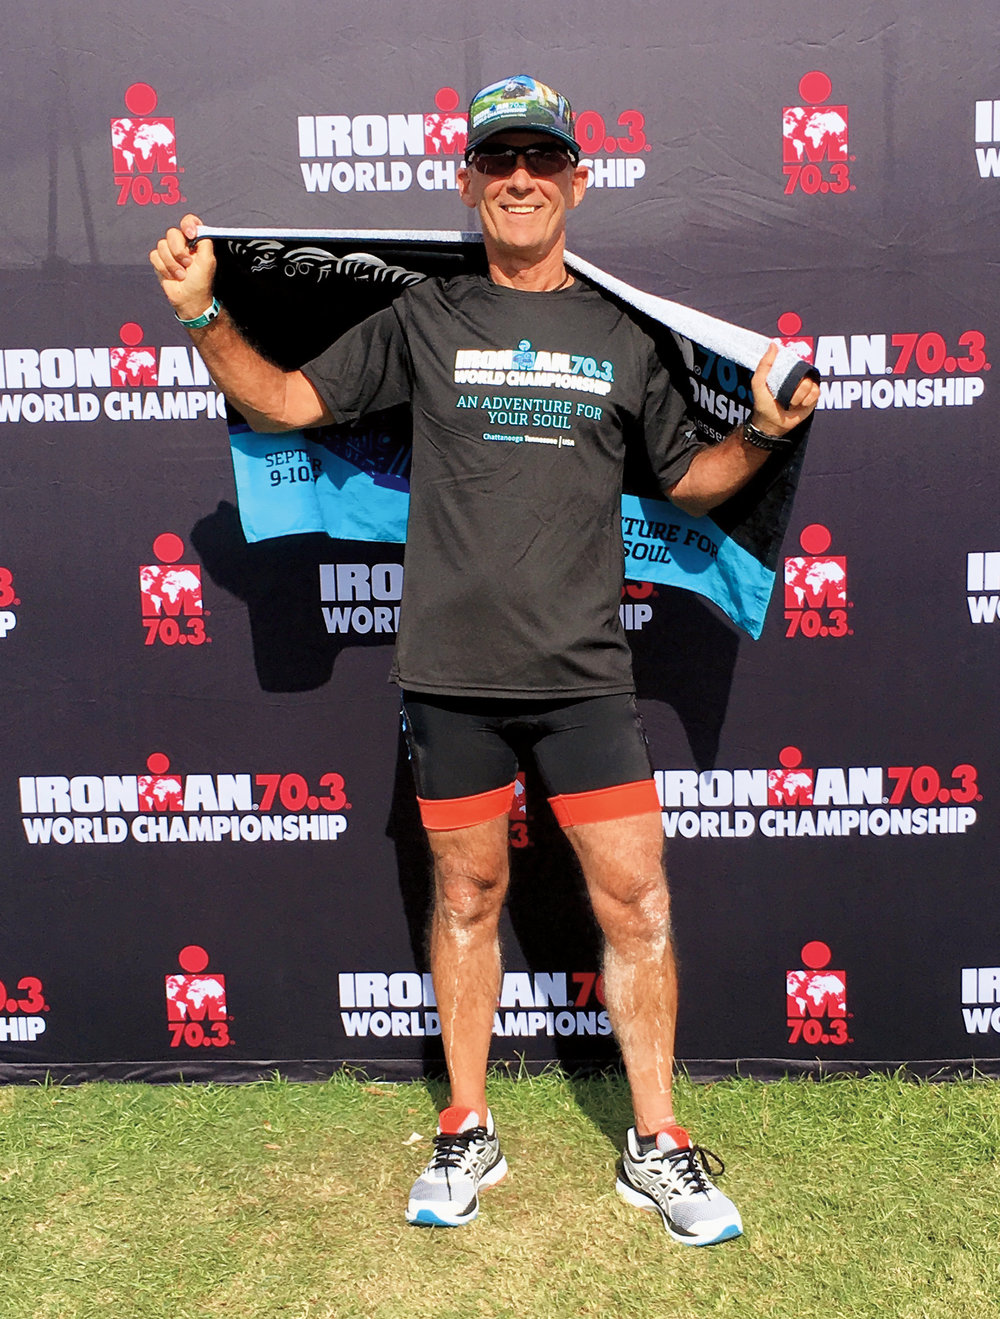 Charlie Bronson '72 completed his second triathlon at the Ironman 70.3 World Championship.